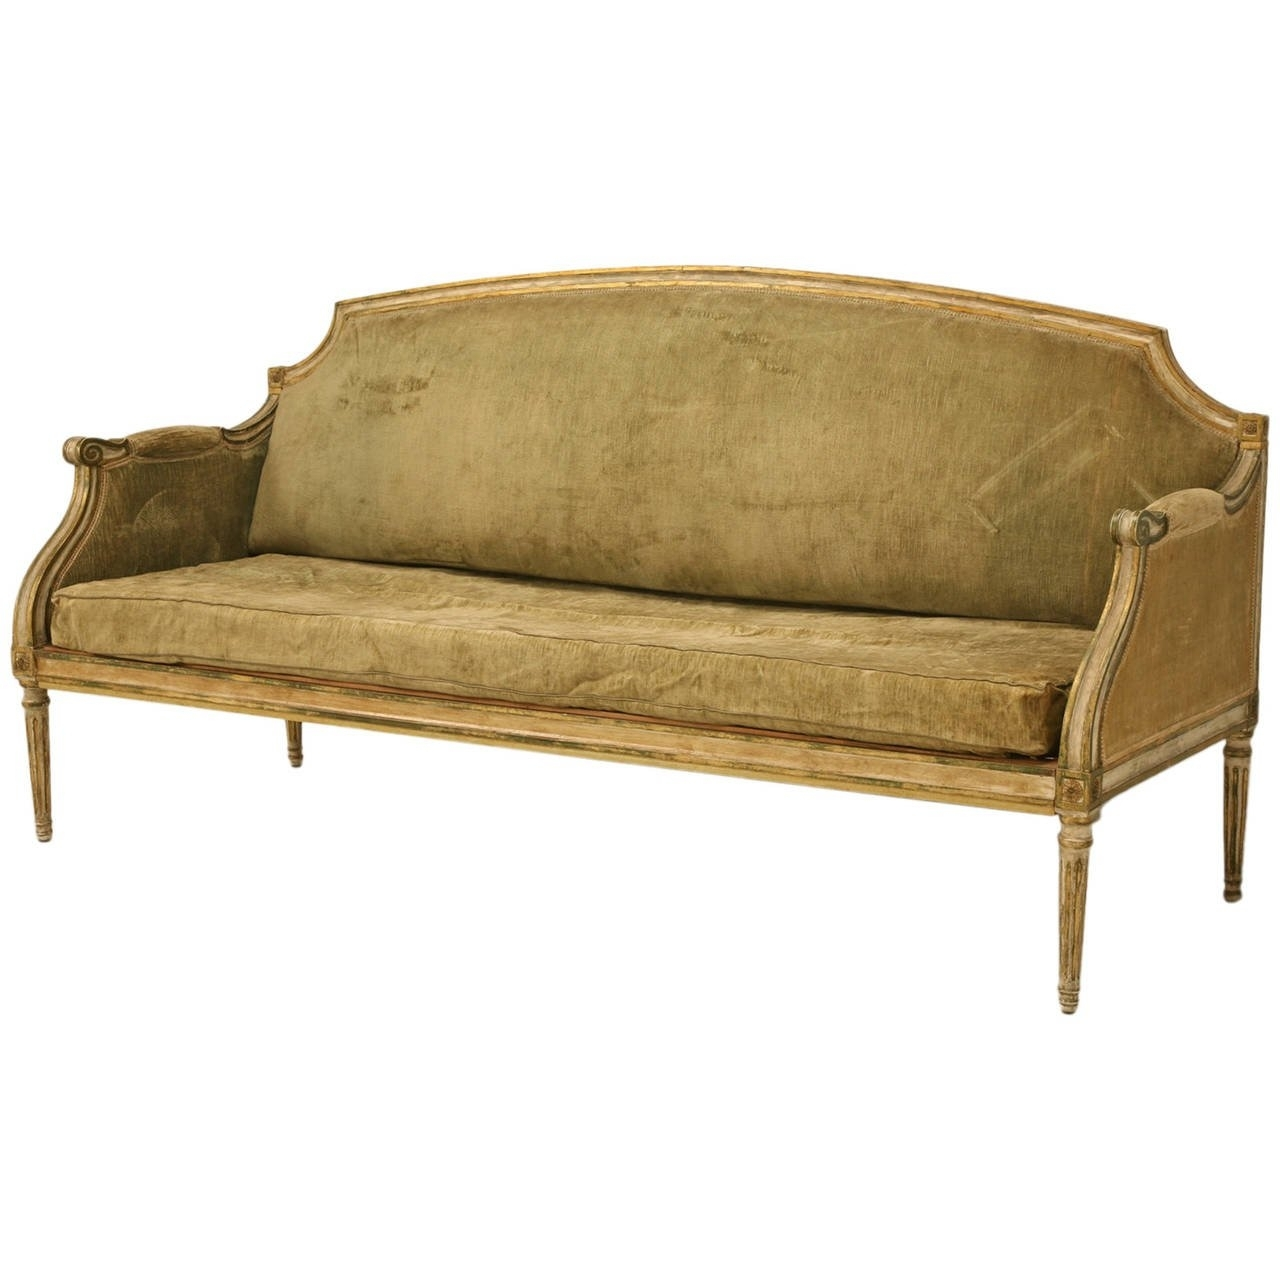 Xvi Style Antique Sofa In Incredible Original Paint At 1Stdibs regarding Antique Sofas